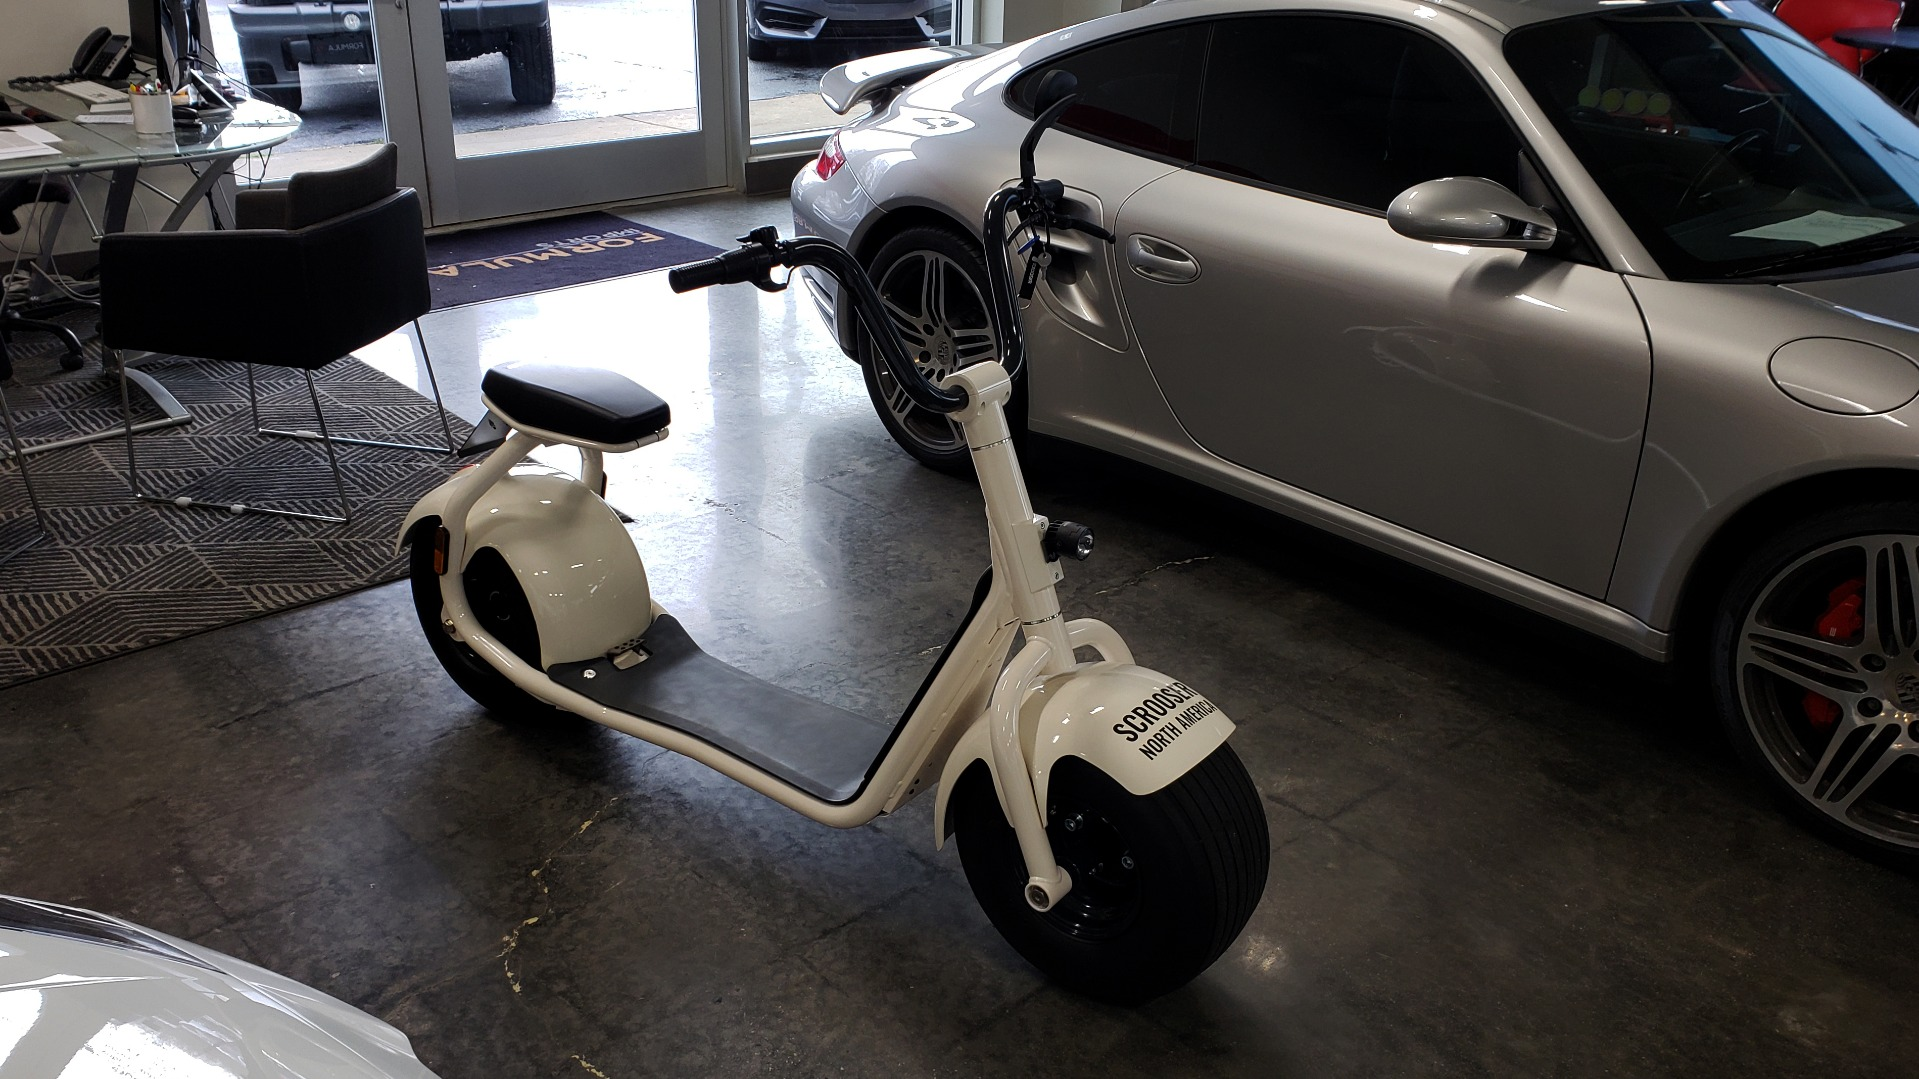 Used 2018 SCROOSER ELECTRIC SCOOTER SELF BALANCED / CUSTOM WHITE / 15.5 MPH / 34 MI RANGE for sale $1,699 at Formula Imports in Charlotte NC 28227 1